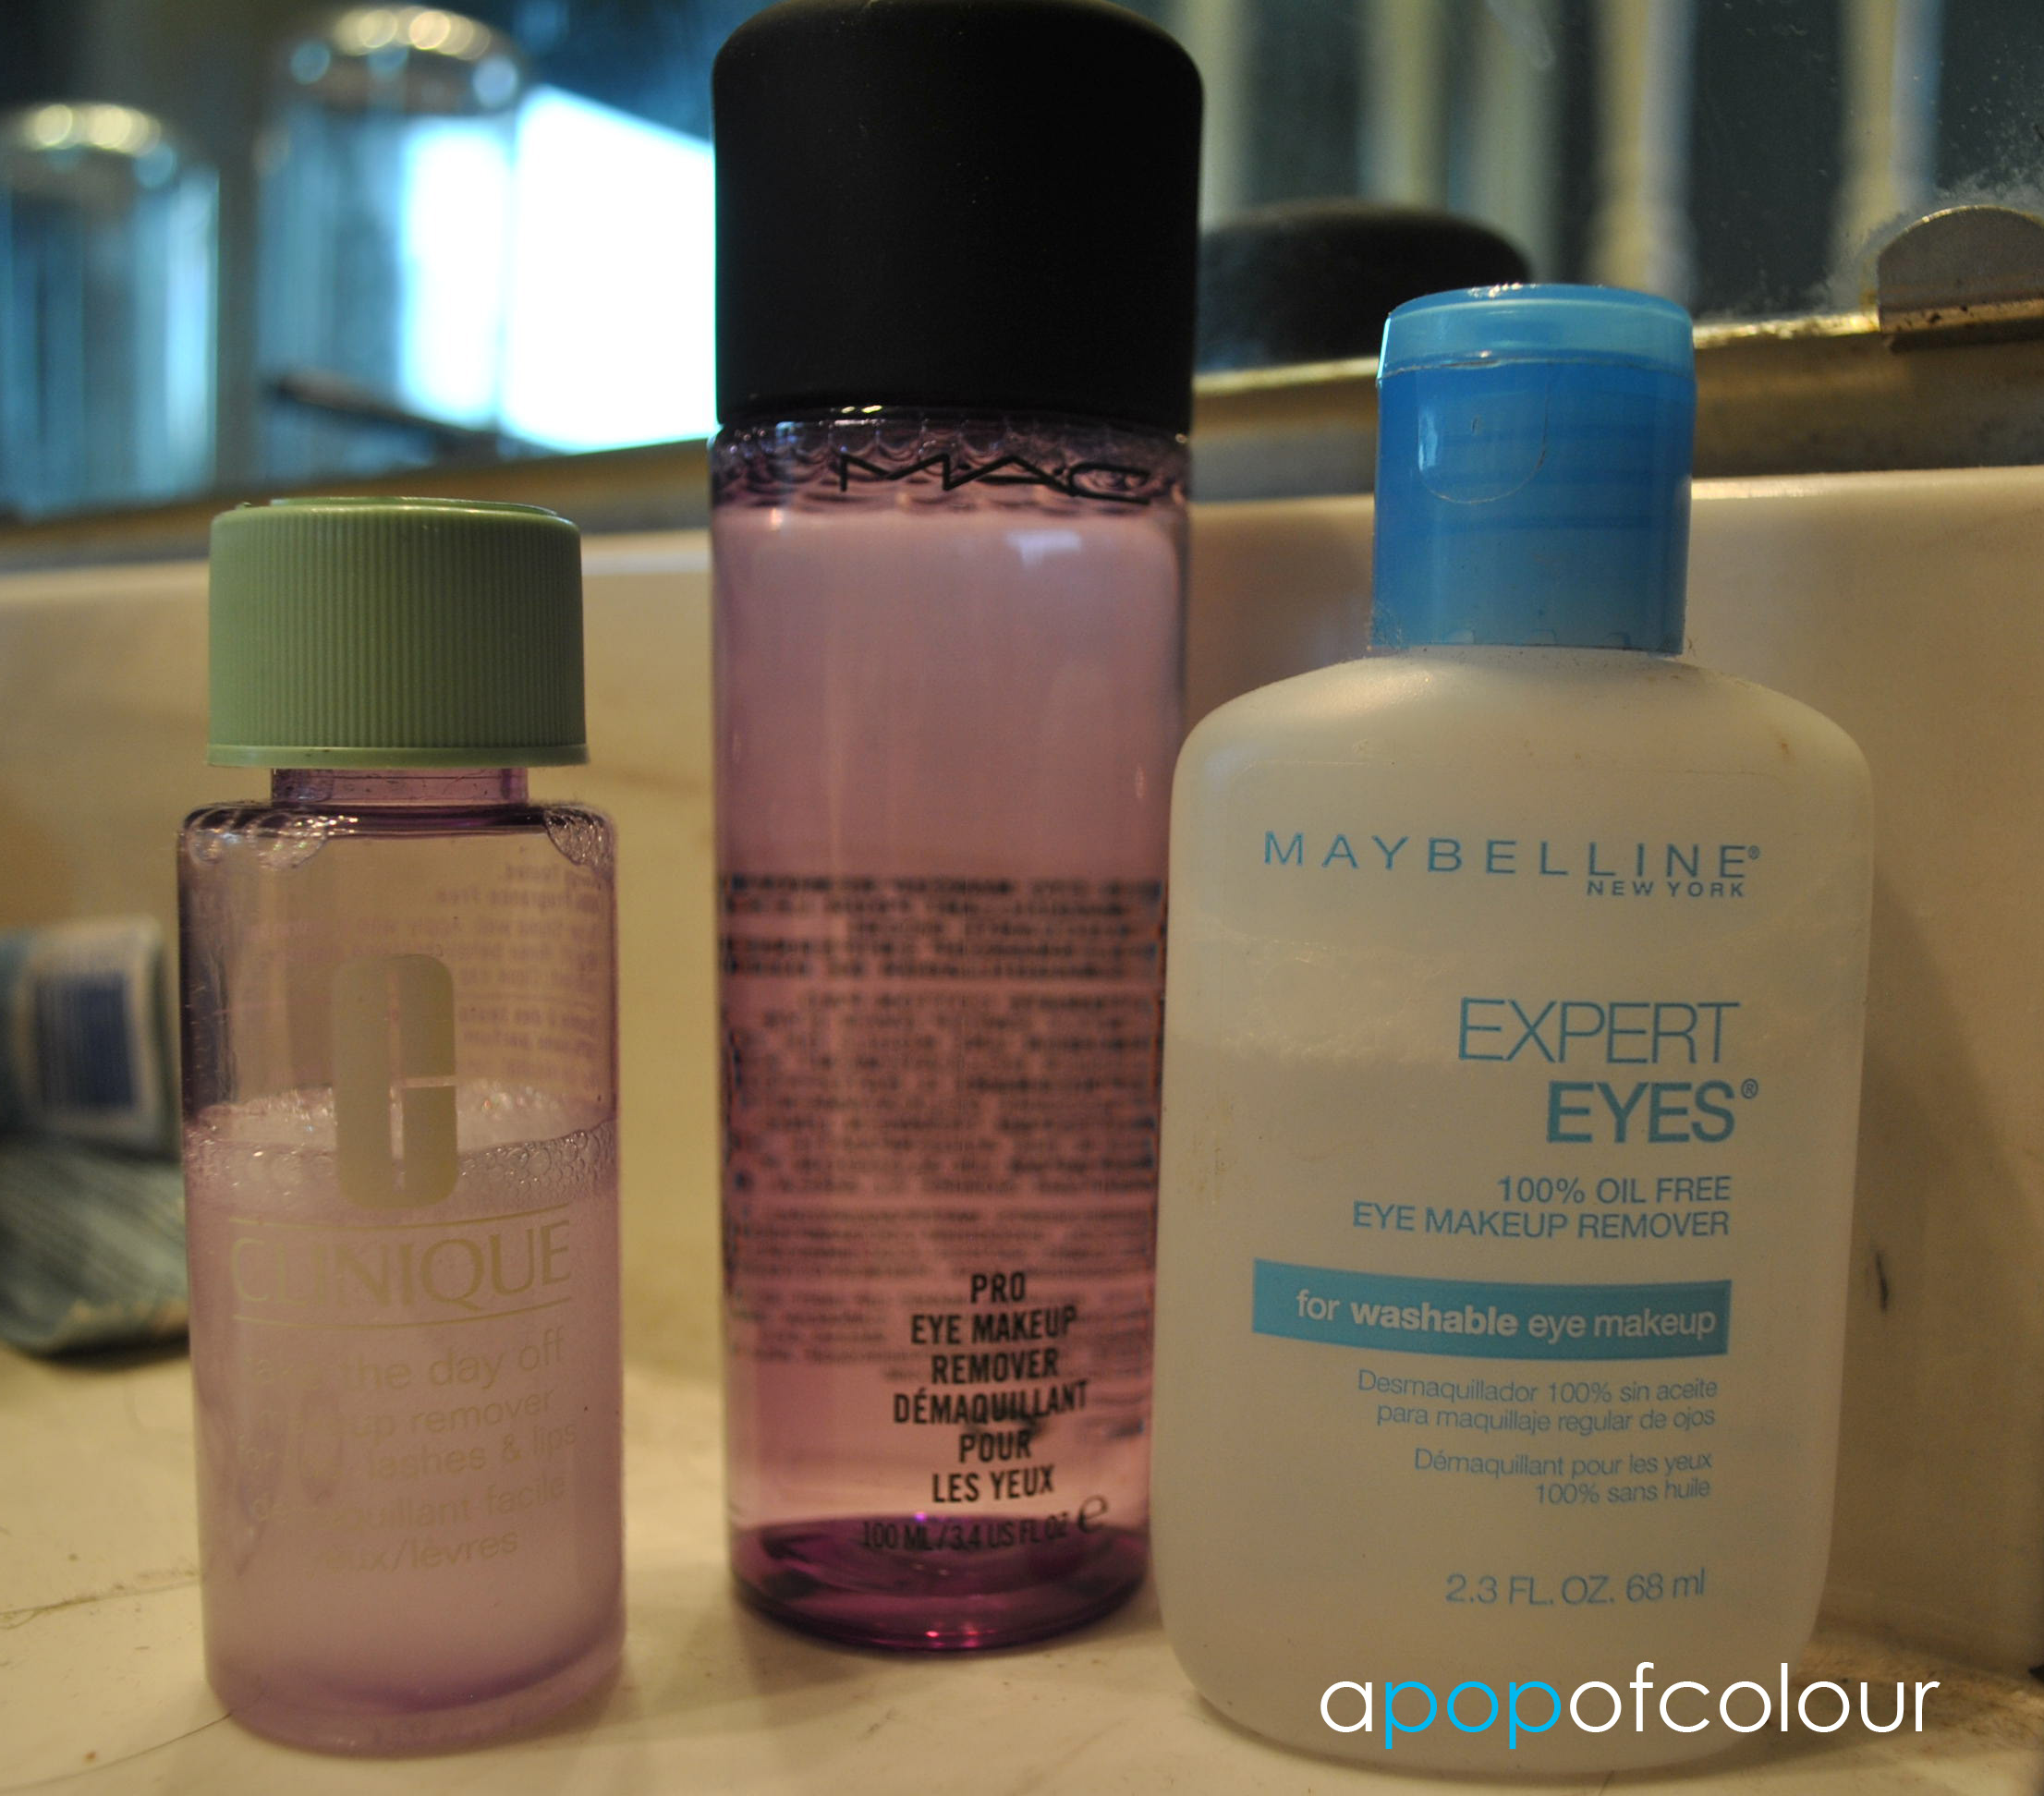 Makeup Be Gone The Hunt To Find The Best Makeup Remover A Pop Of